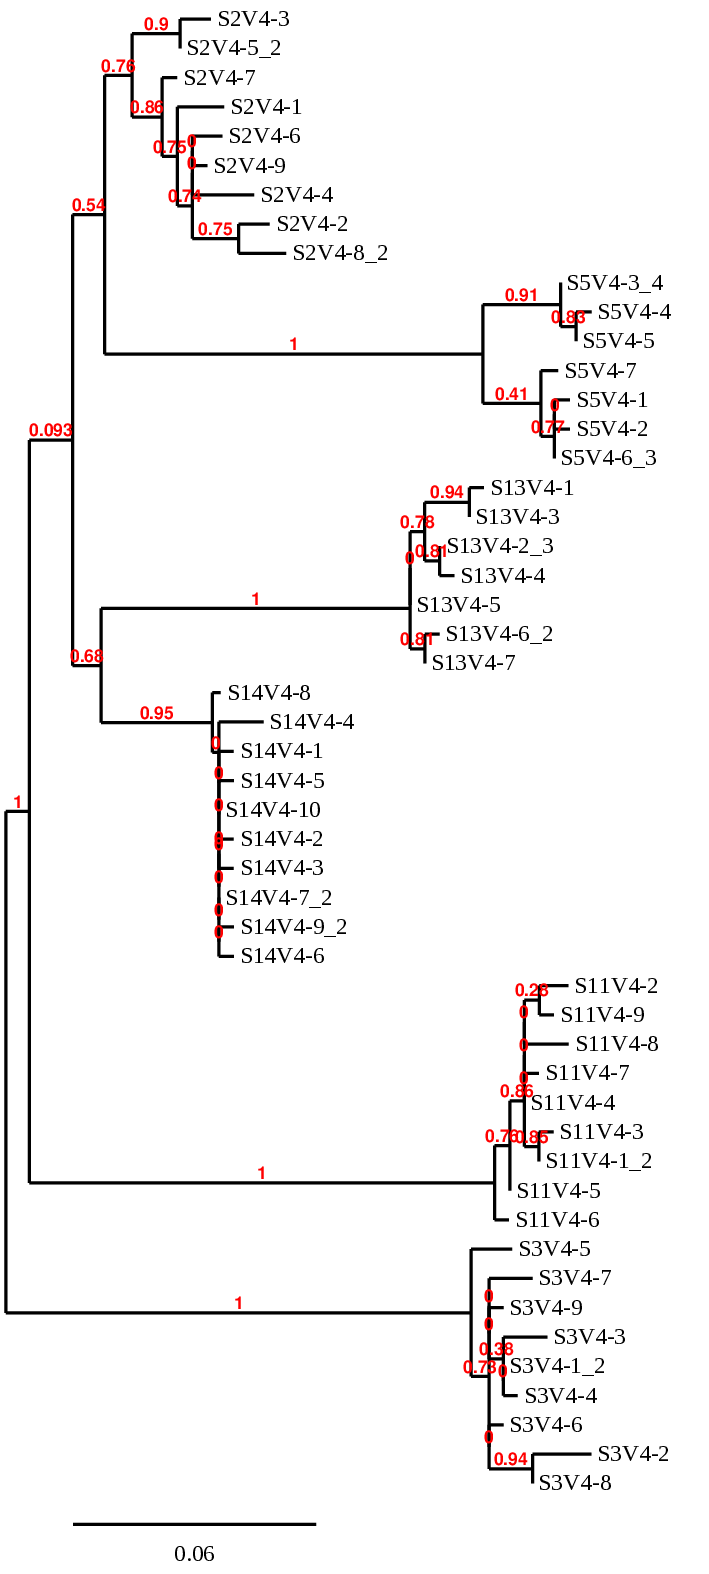 Phylo tree visit 4 all sequences.png